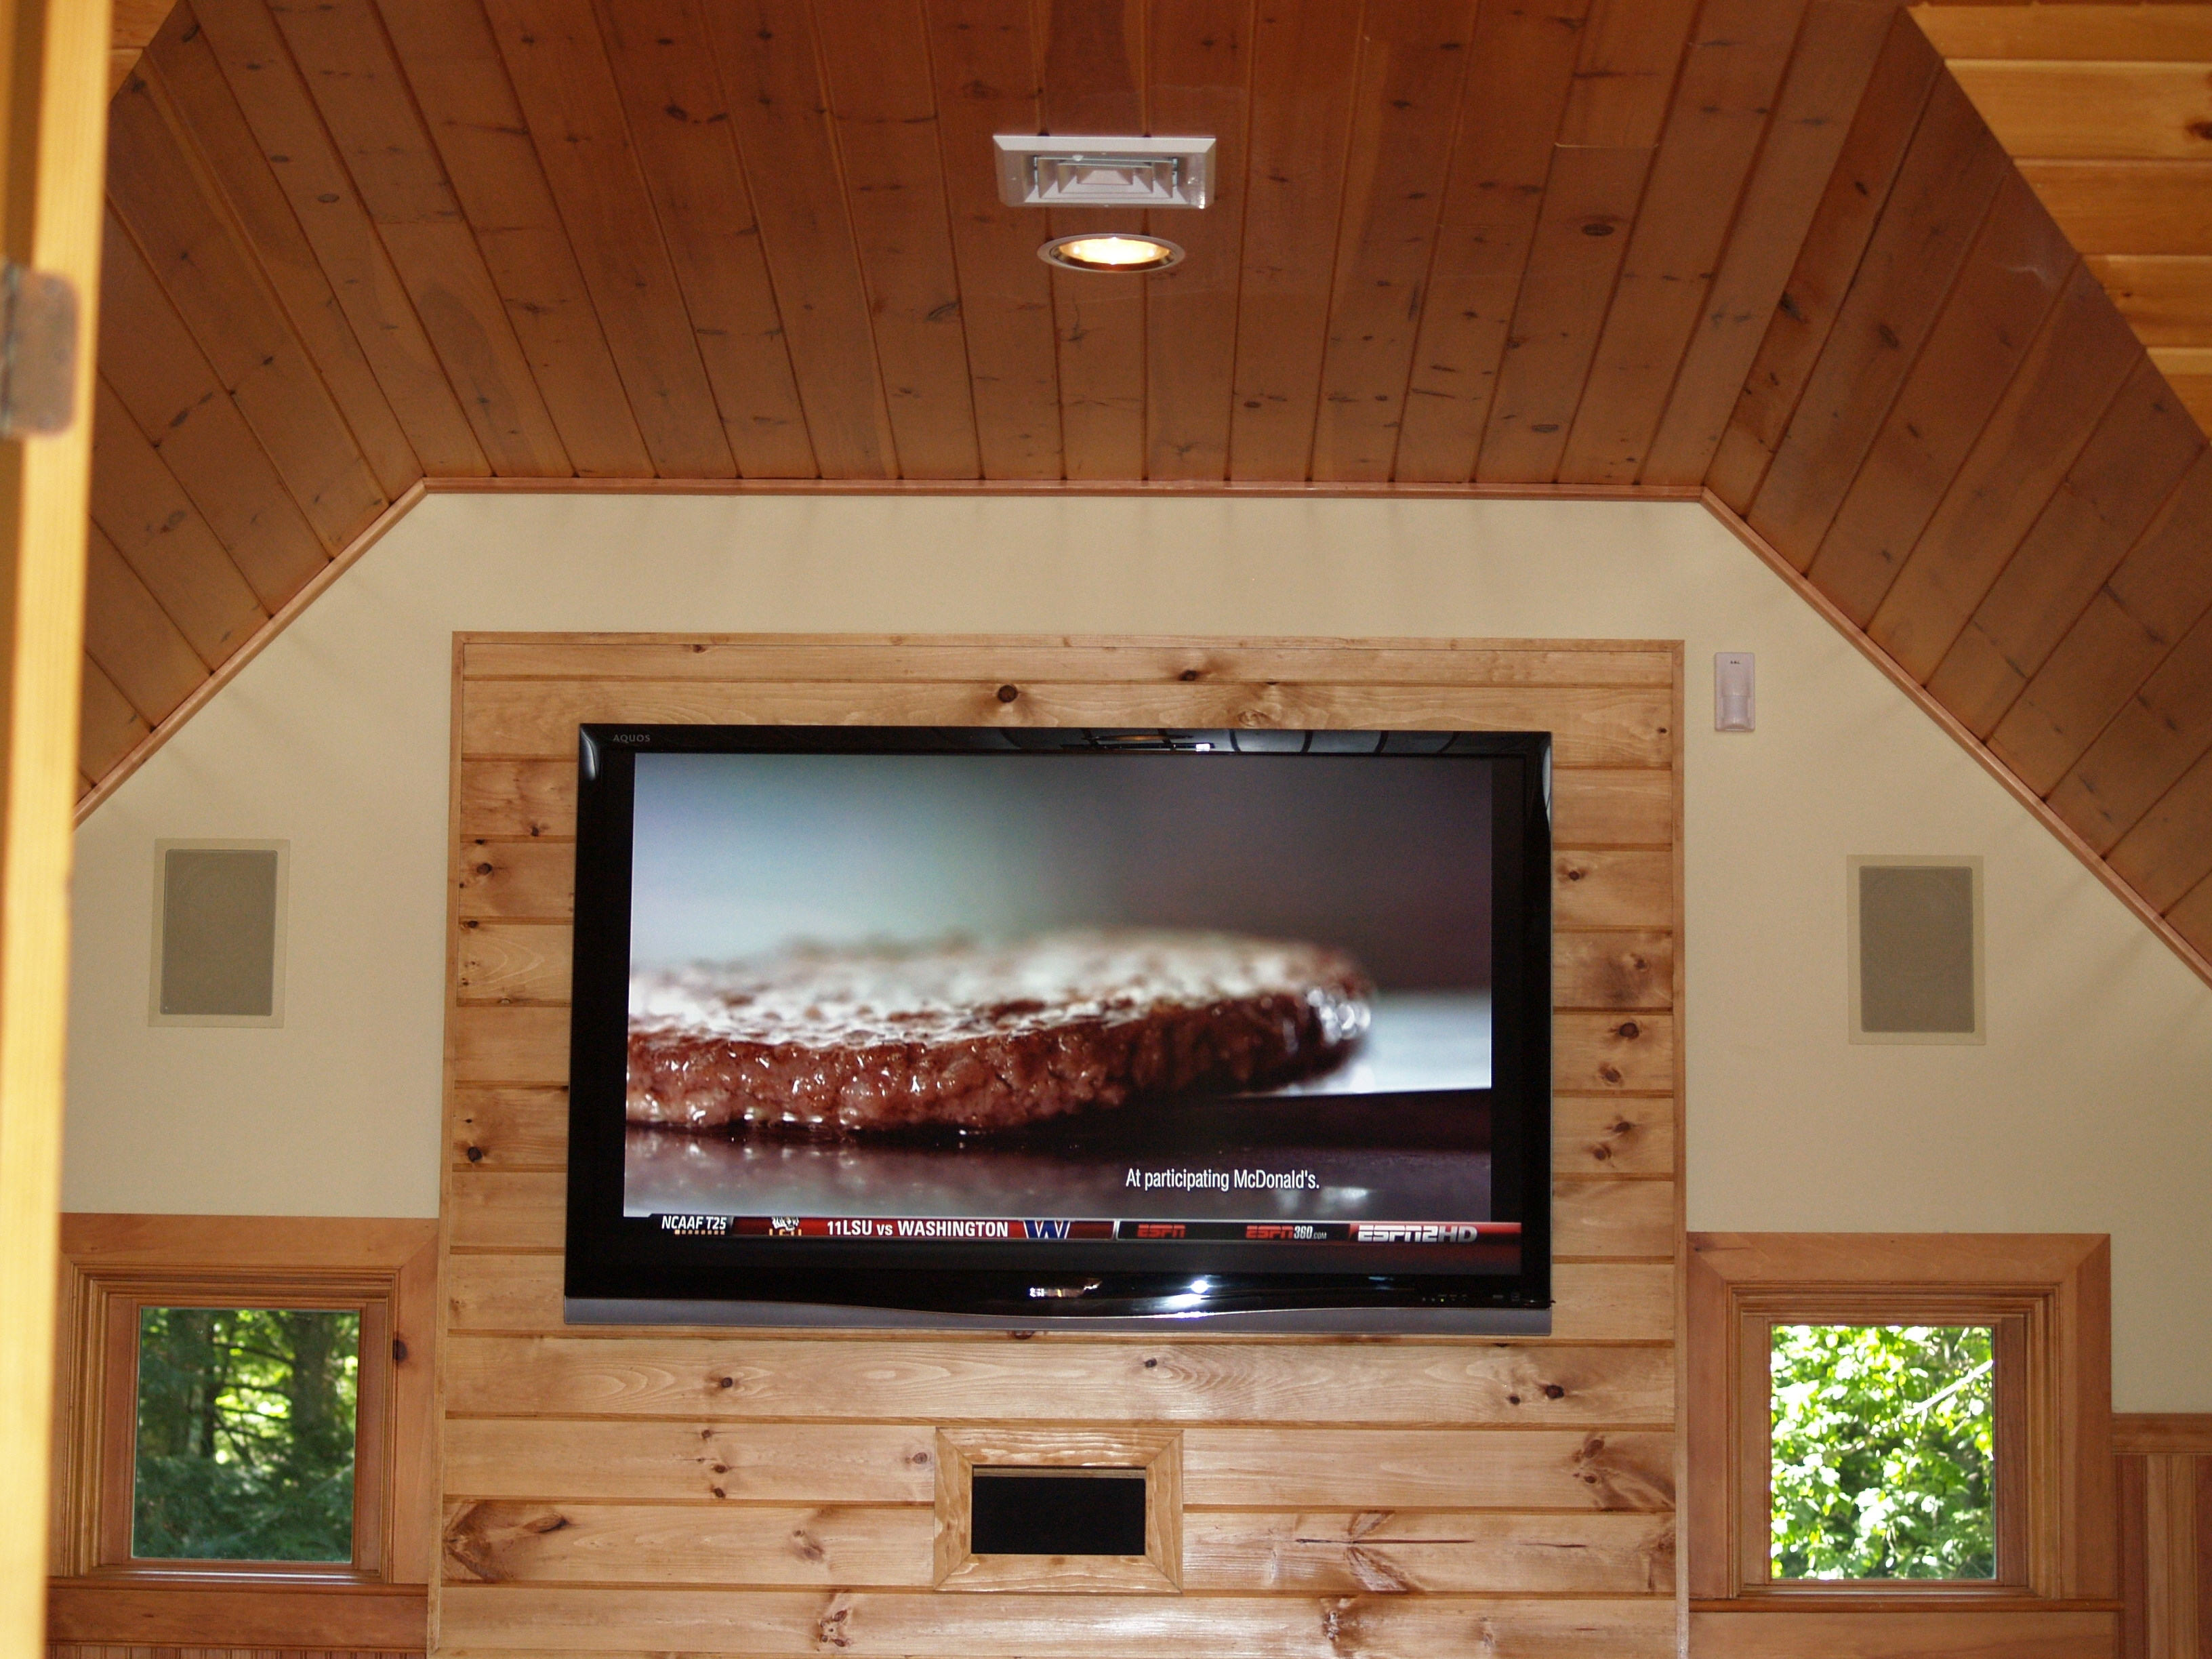 Gilford wall mount a flat screen in new hamsphire nh home theatre install home theatre - Home theater screen wall design ...